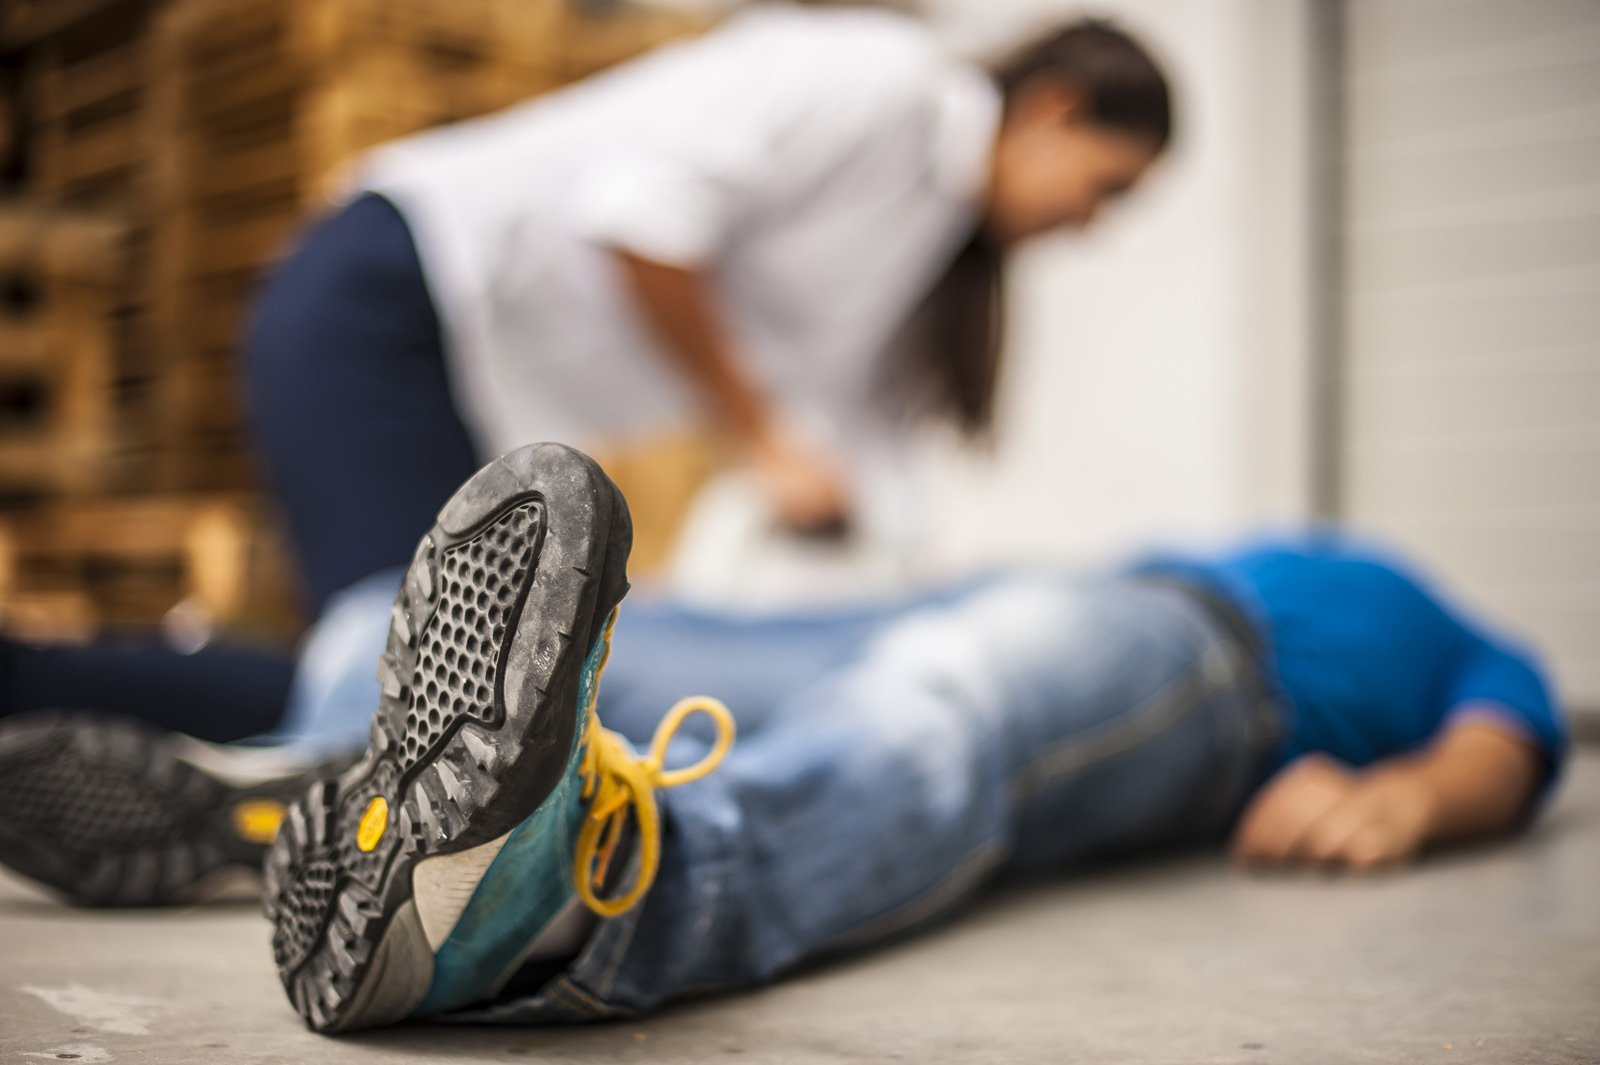 Type of work accidents in construction and attorneys for accidents in South Florida